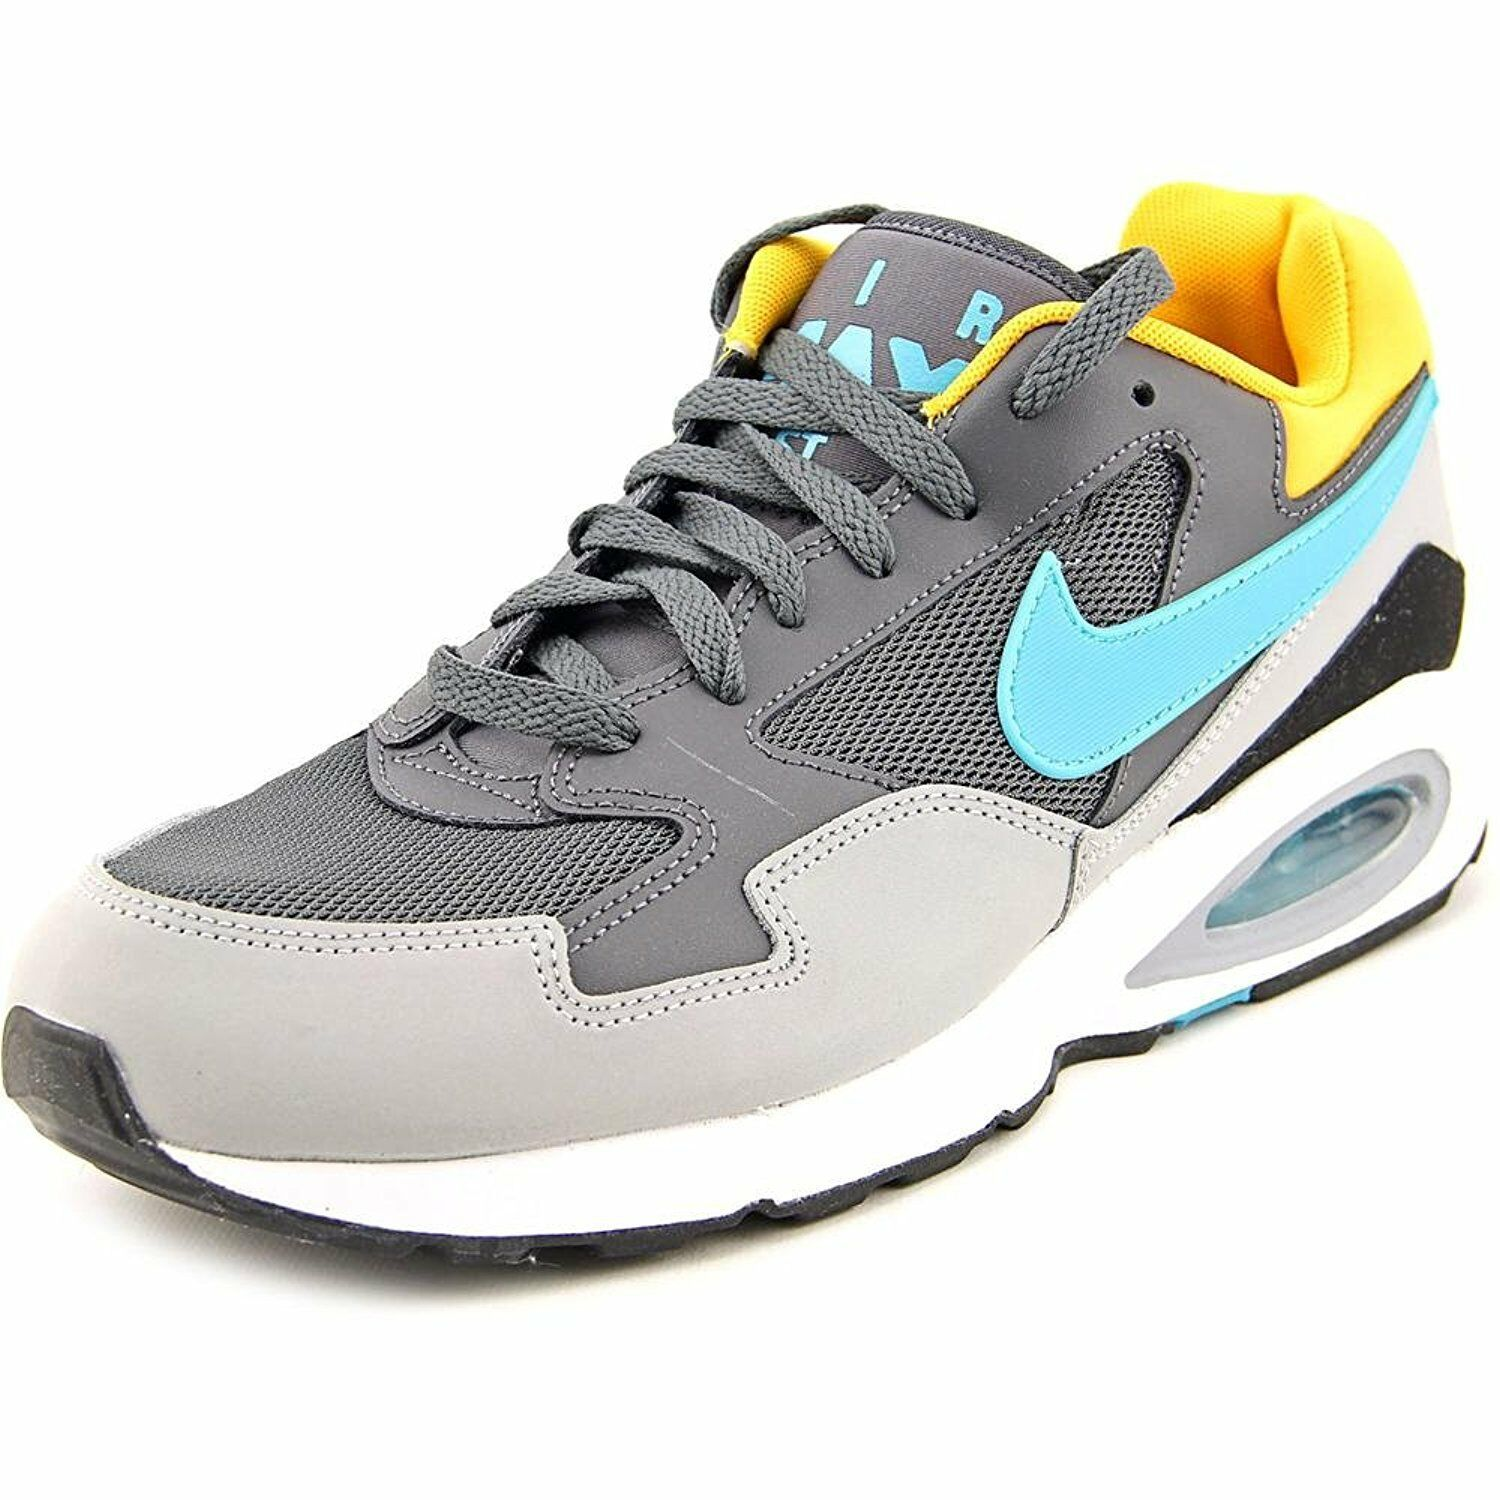 best sneakers adad5 3dde7 clearance mens nike air max st running shoes 652976 003 sizes 10.5 14 10.5  14 sizes